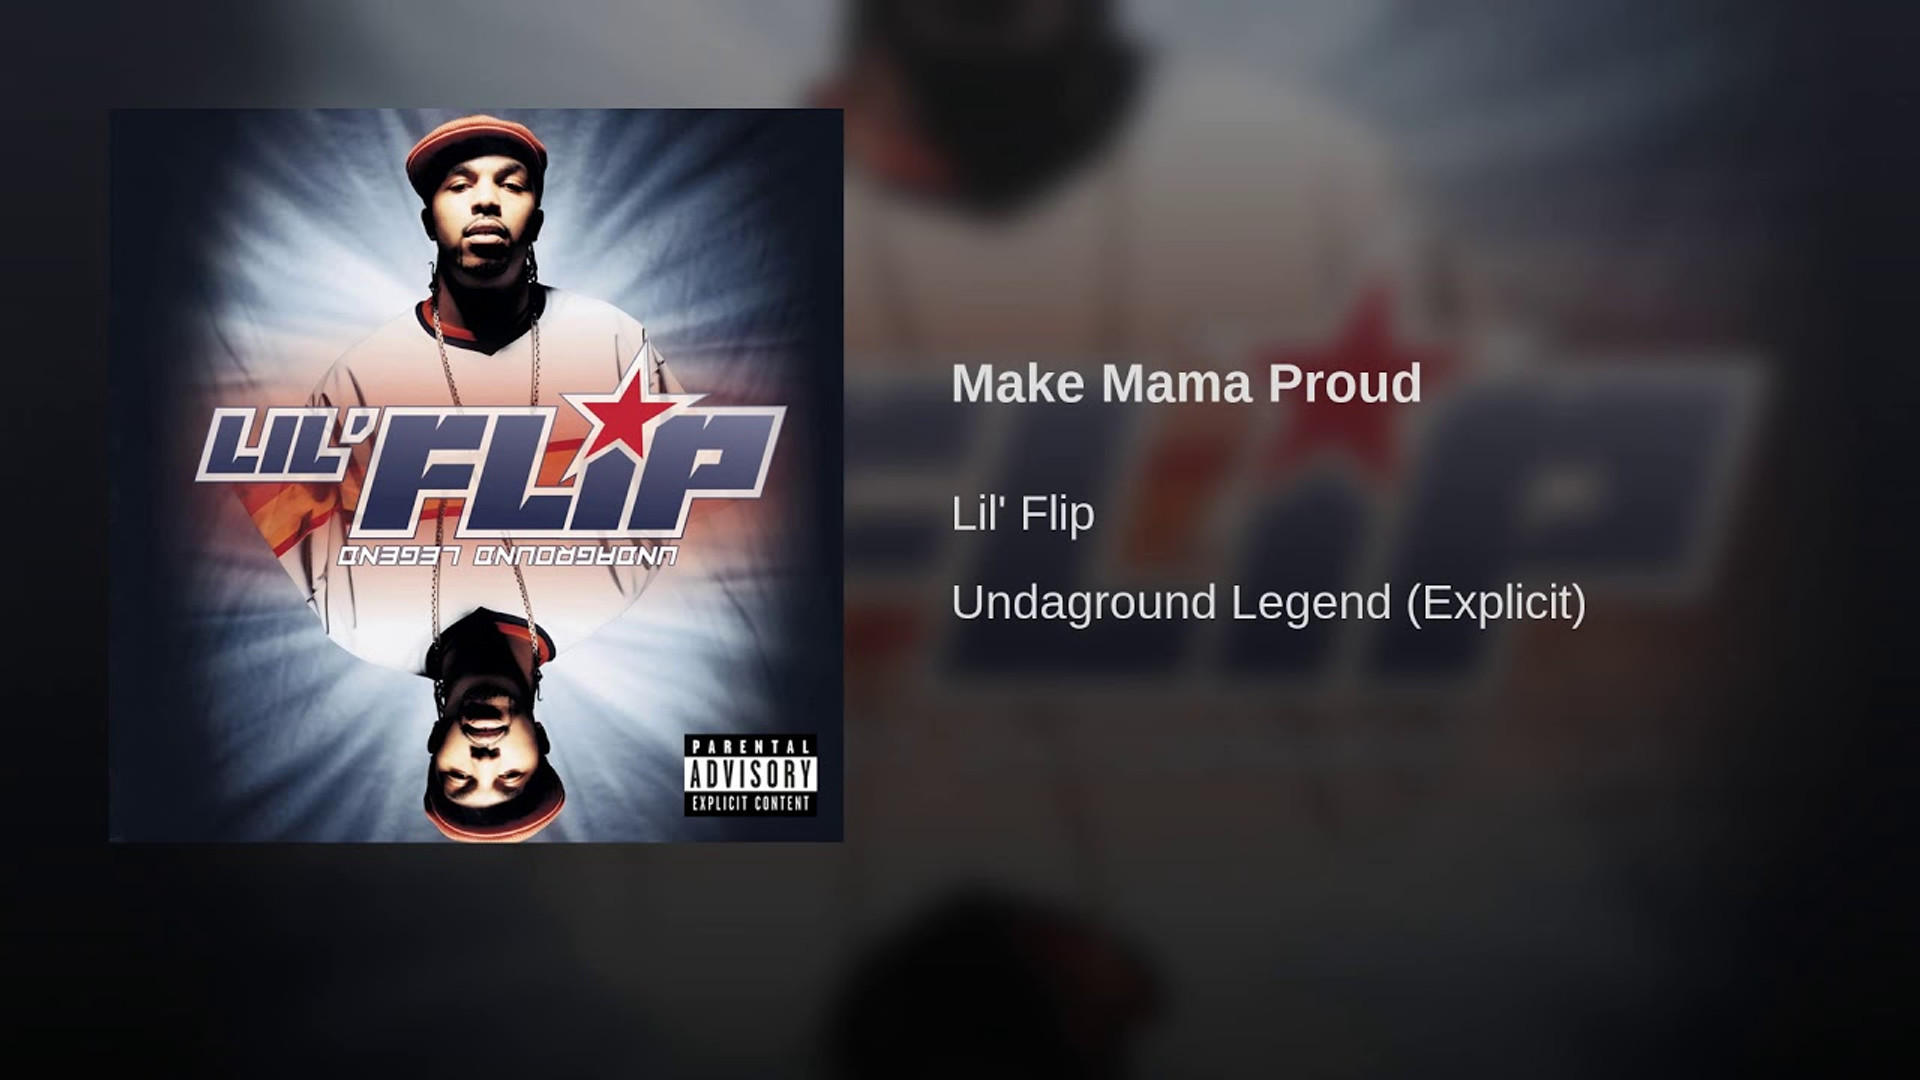 Lil Flip - Make Mama Proud (2002) Sony/Columbia